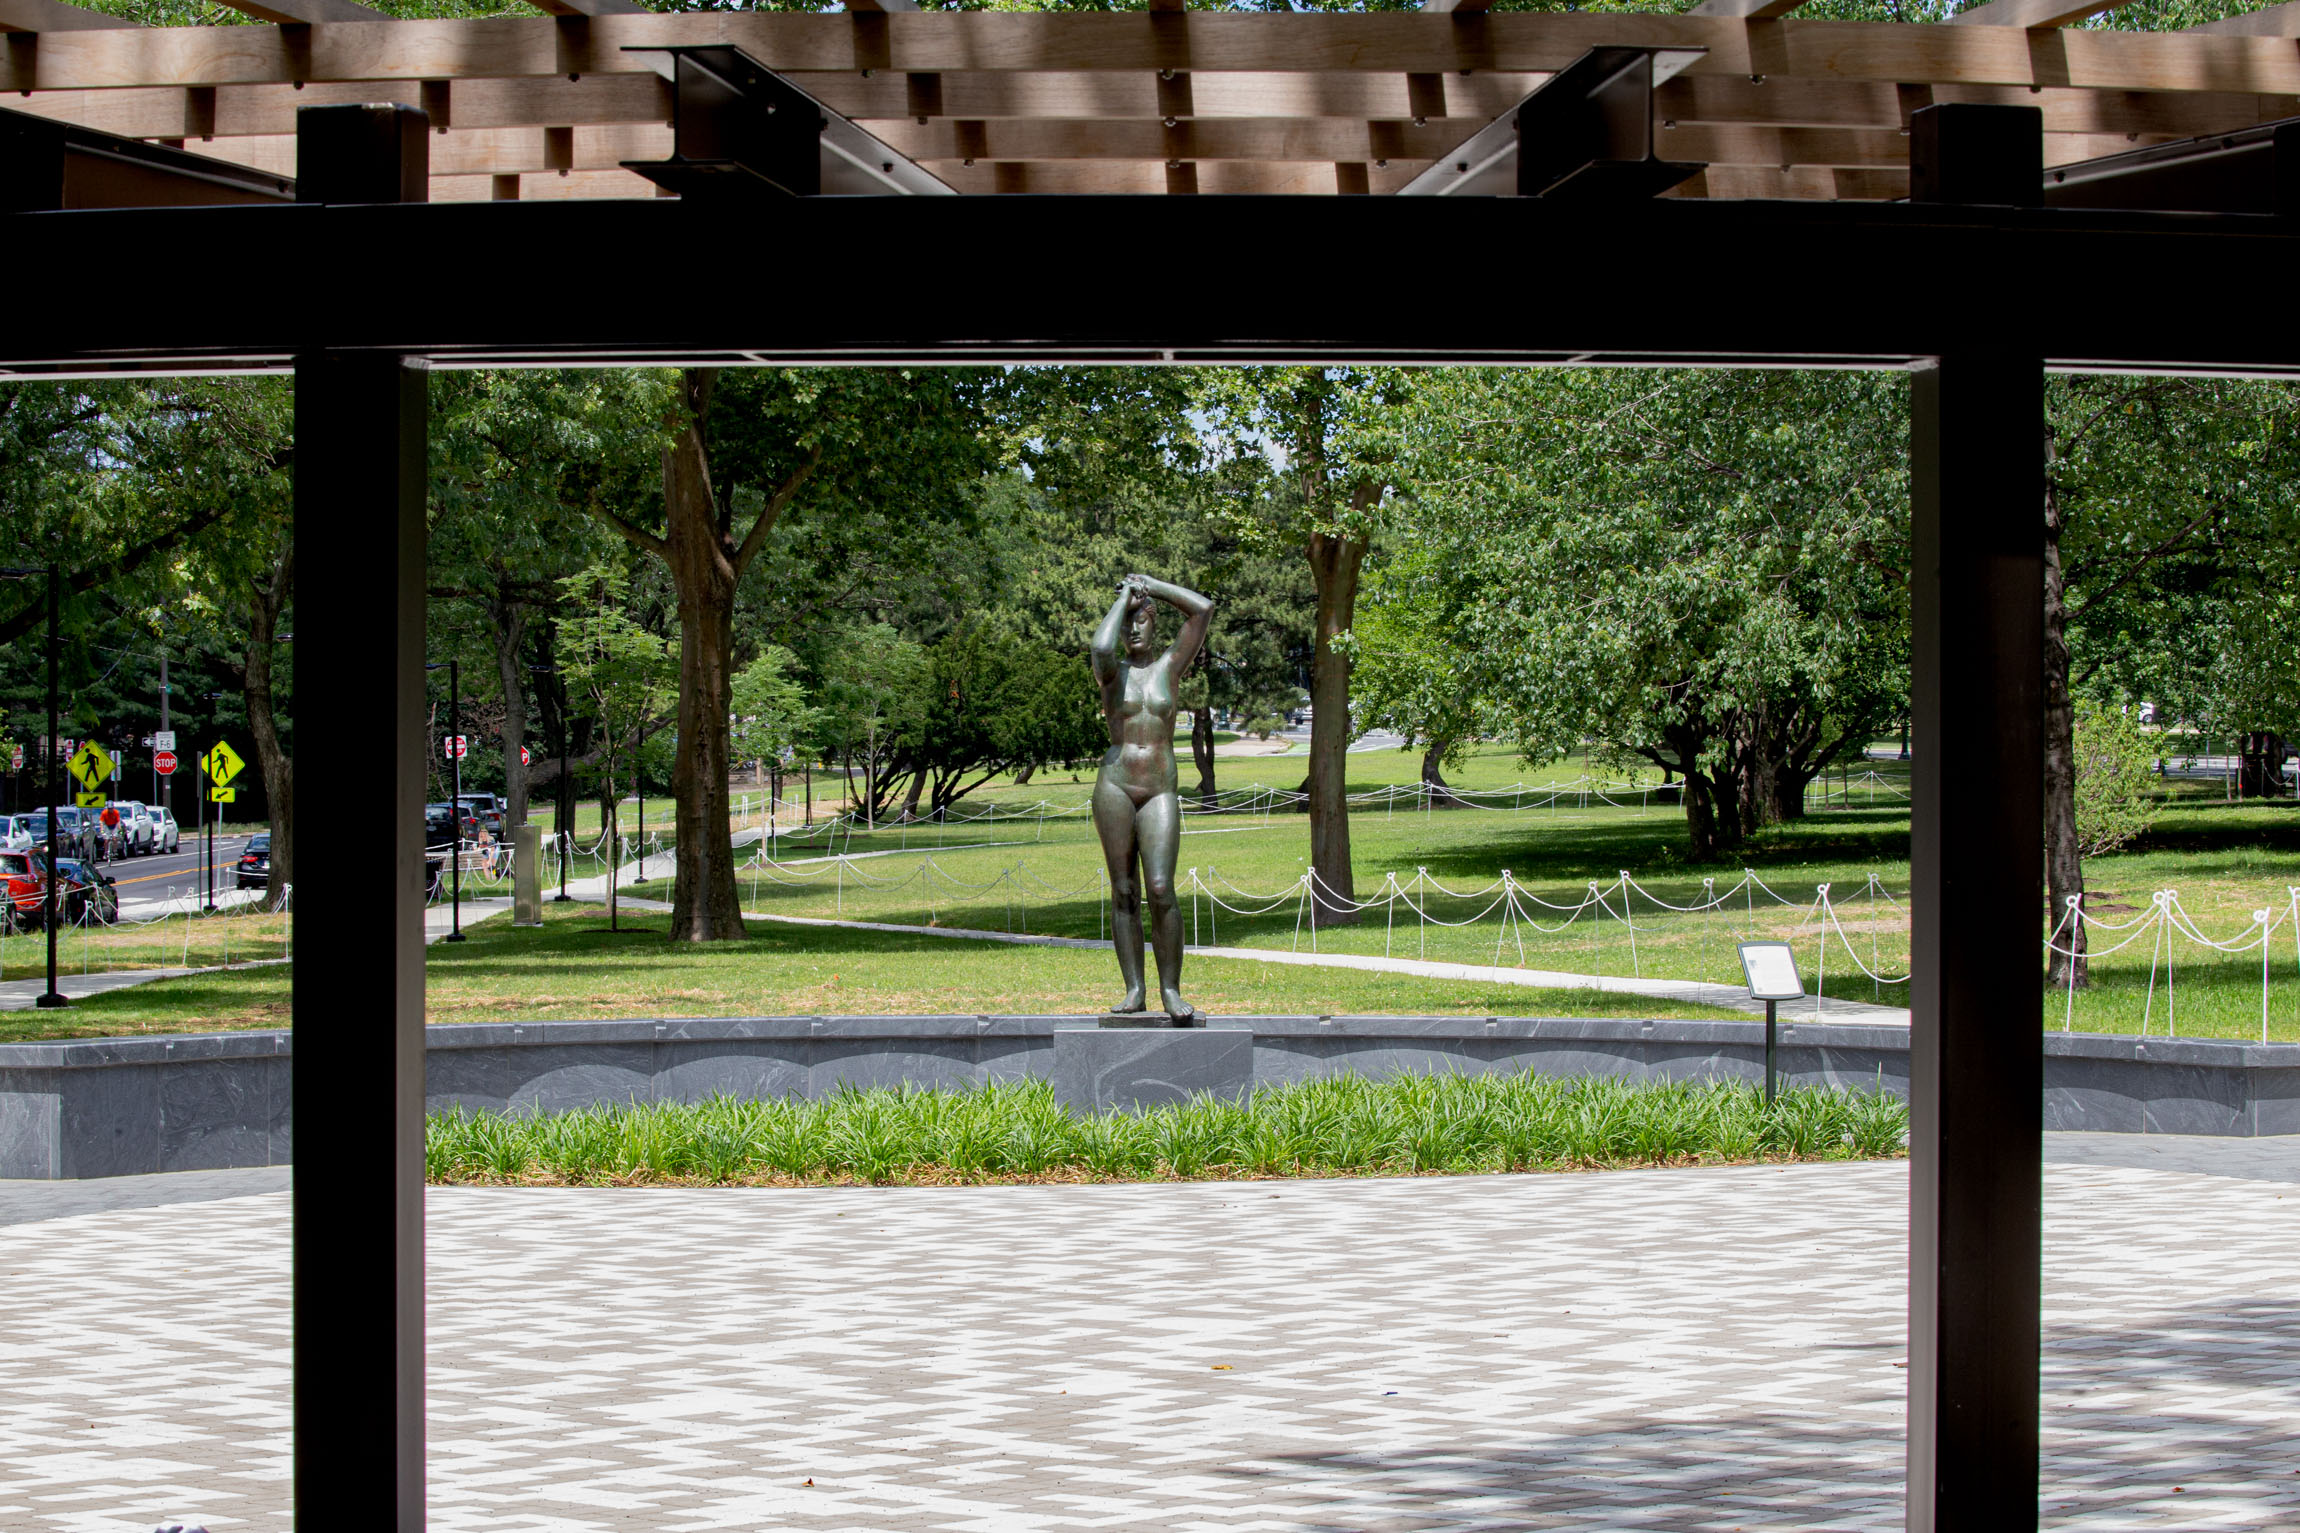 """The Gerhard Marcks """"Maja"""" sculpture –figurative bronze nude female with arms overhead – in the new """"Maja Park"""" on the Parkway on a sunny June day. The sculpture stands tall on a gray granite base, surrounded by green Liriope plants and stone paving."""